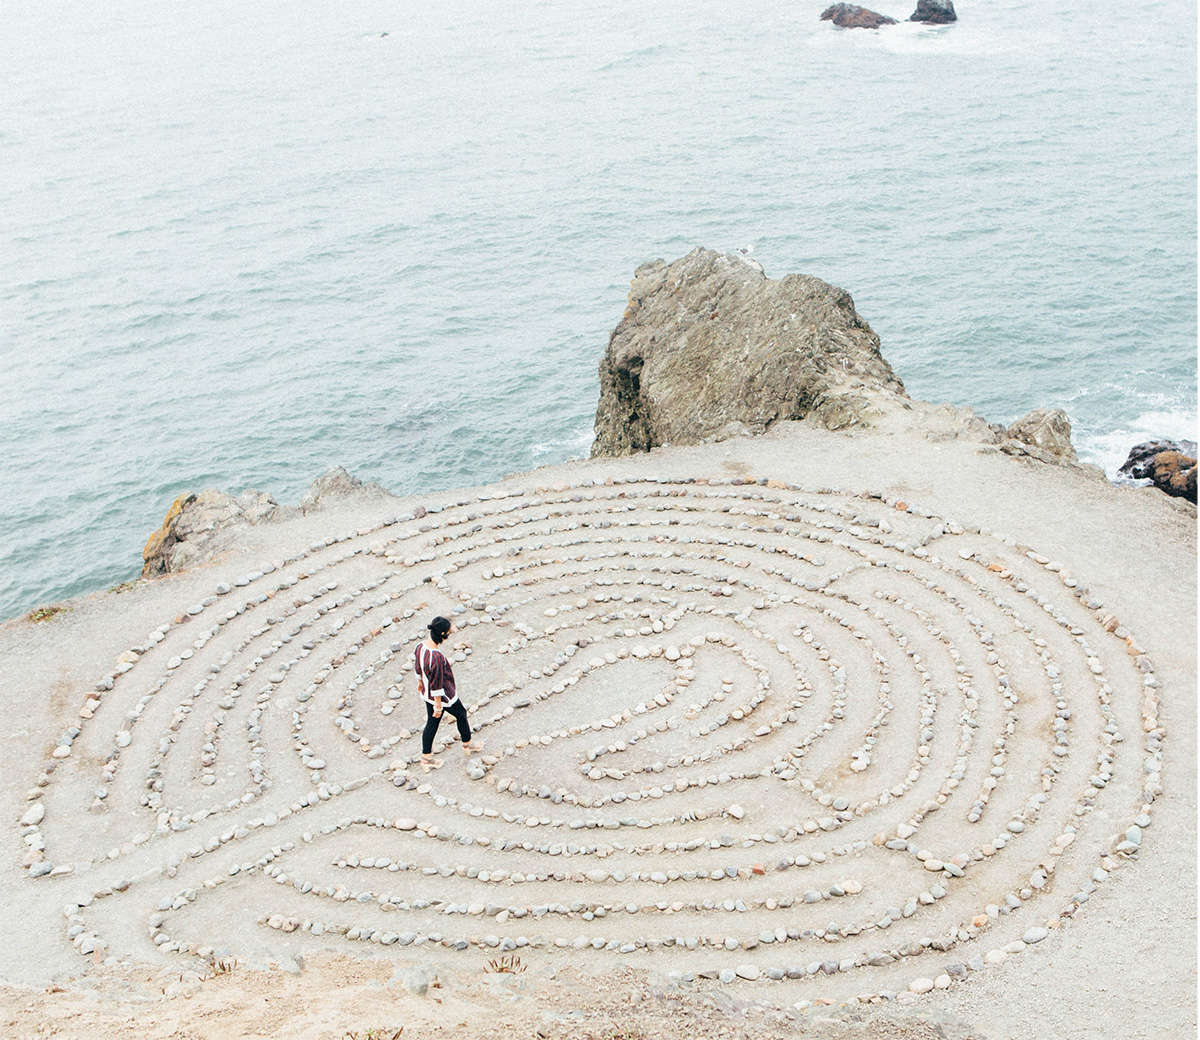 Maze of rocks on the beach with a woman finding the center